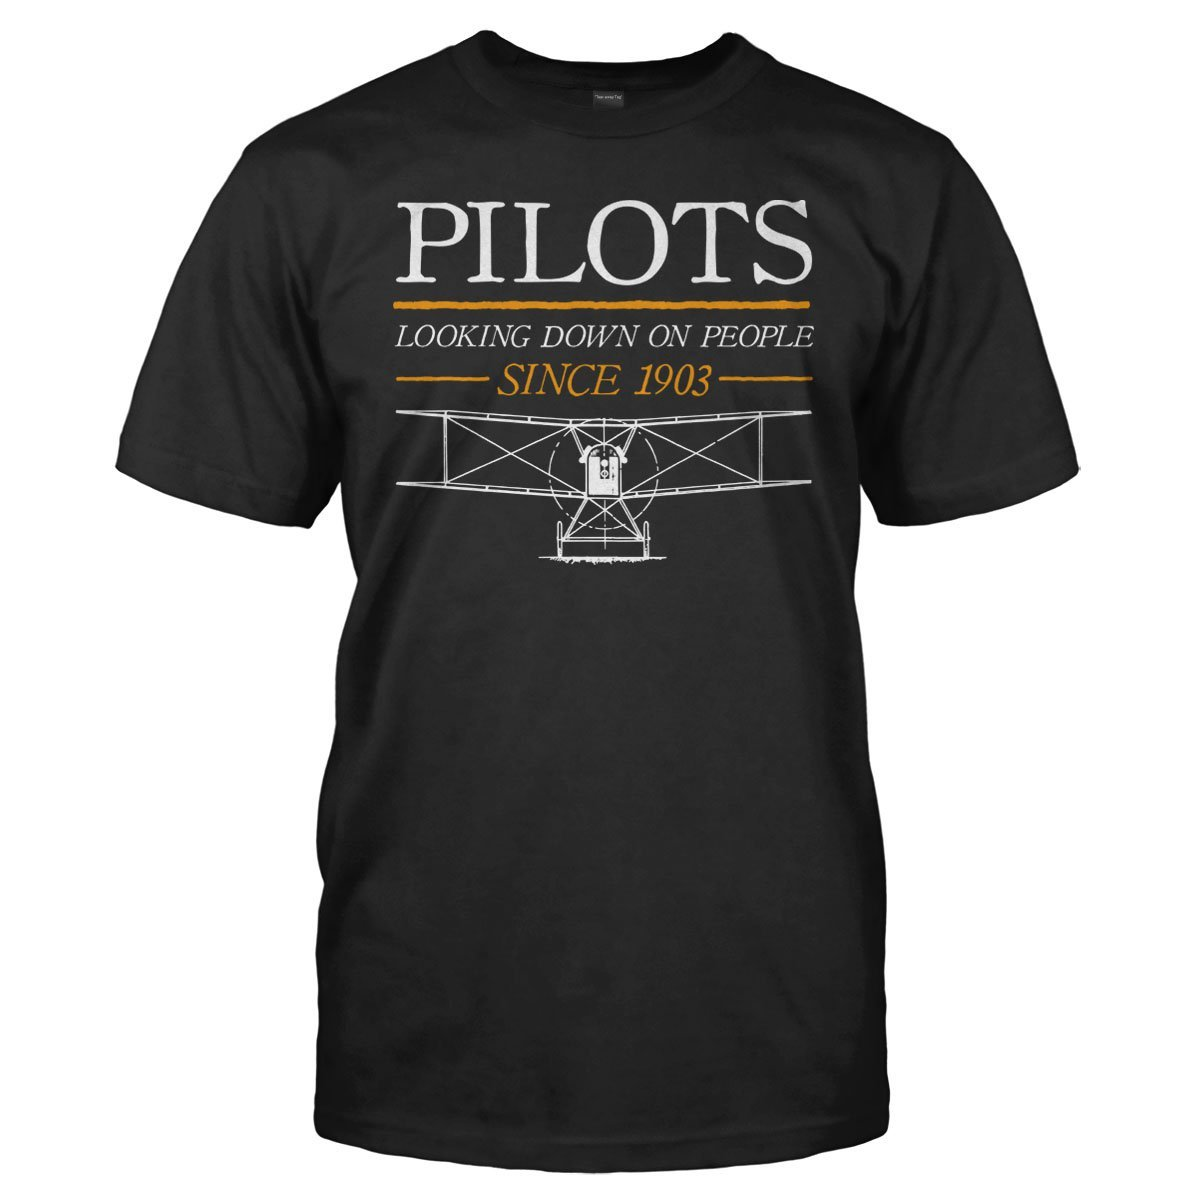 Pilots - Looking Down On People Since 1903 - T Shirt